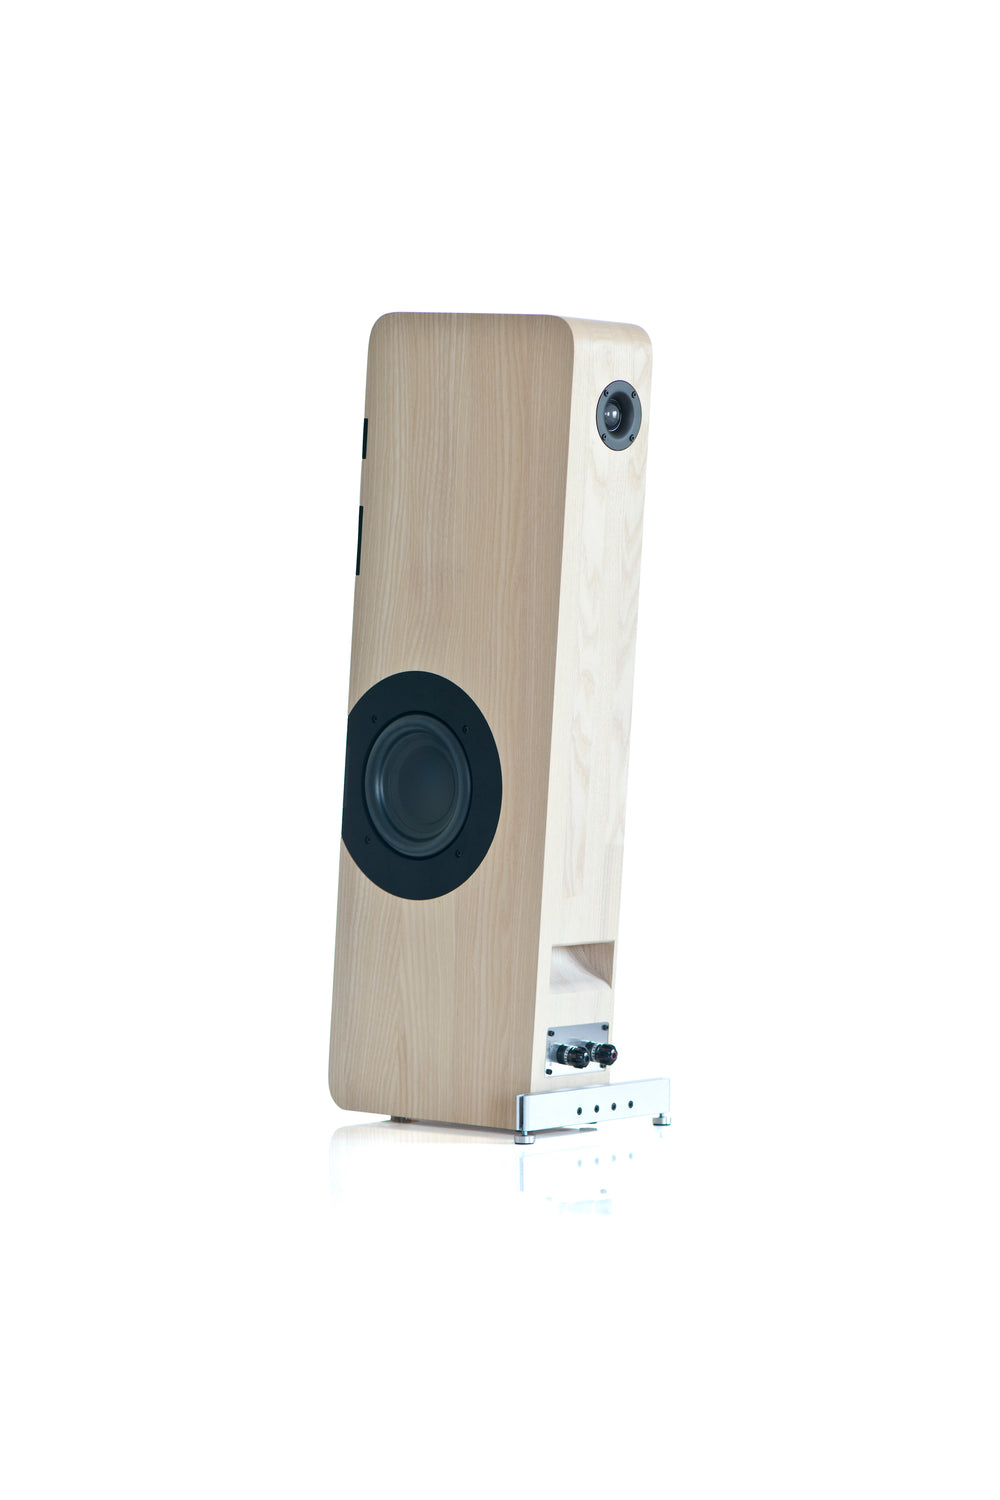 Boenicke W8 Loudspeaker - Alma Music and Audio - San Diego, California